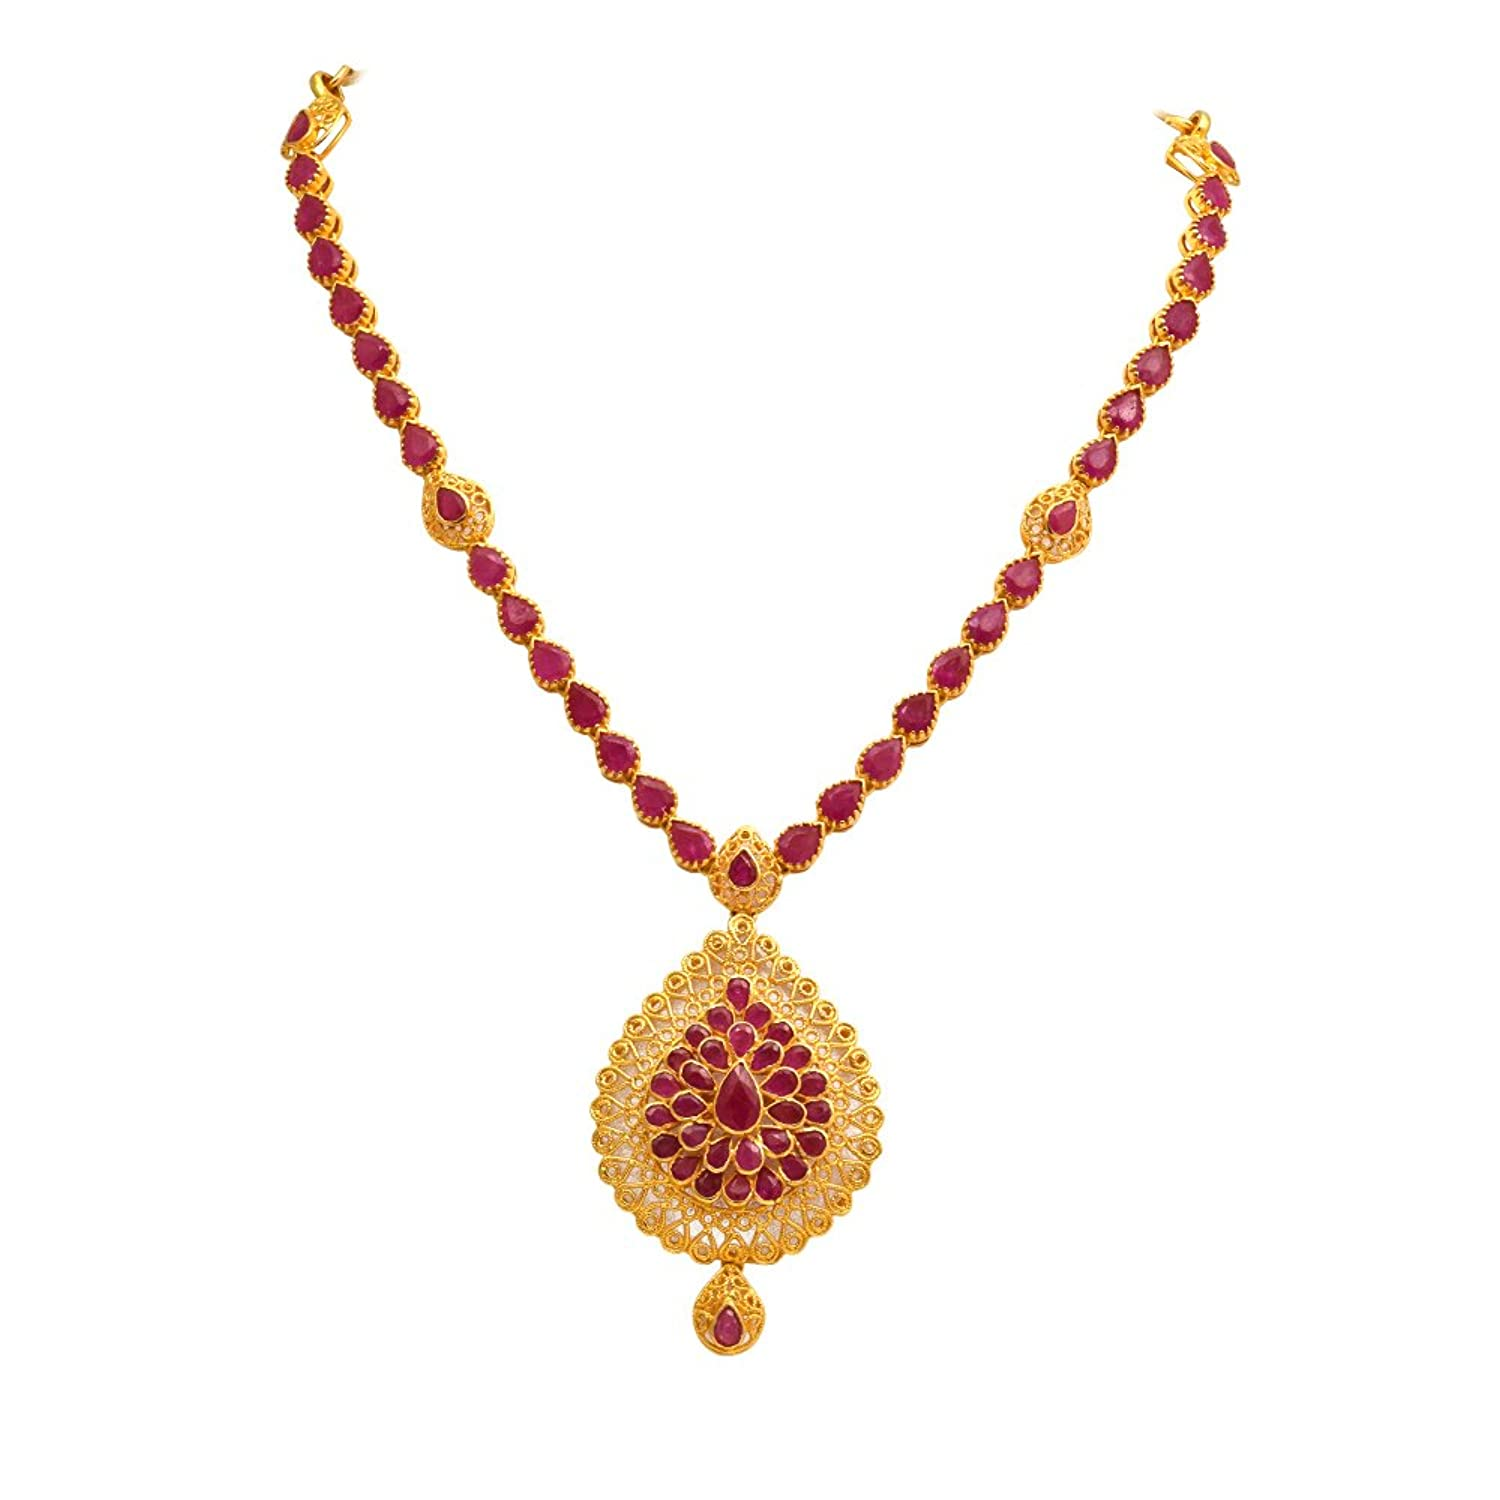 jewelry amrita shop main product necklace singh red nkc black ruby